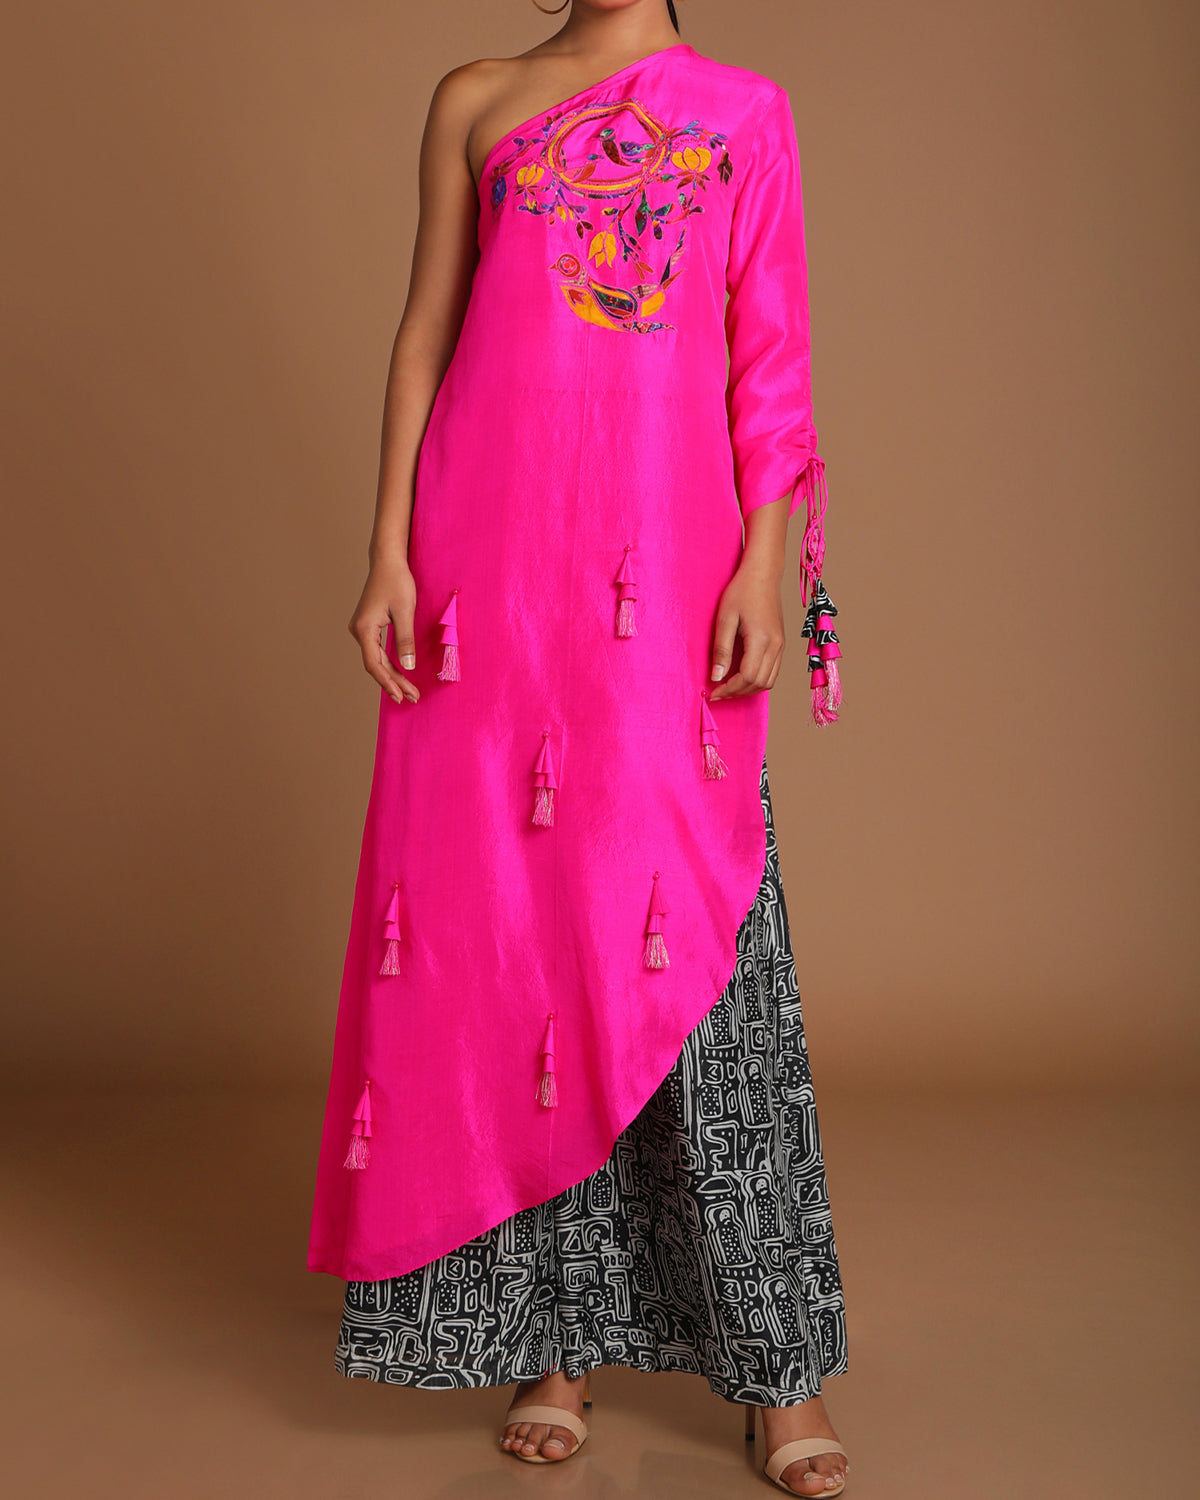 Pink One Shoulder with Black and White Pants | House of Masaba